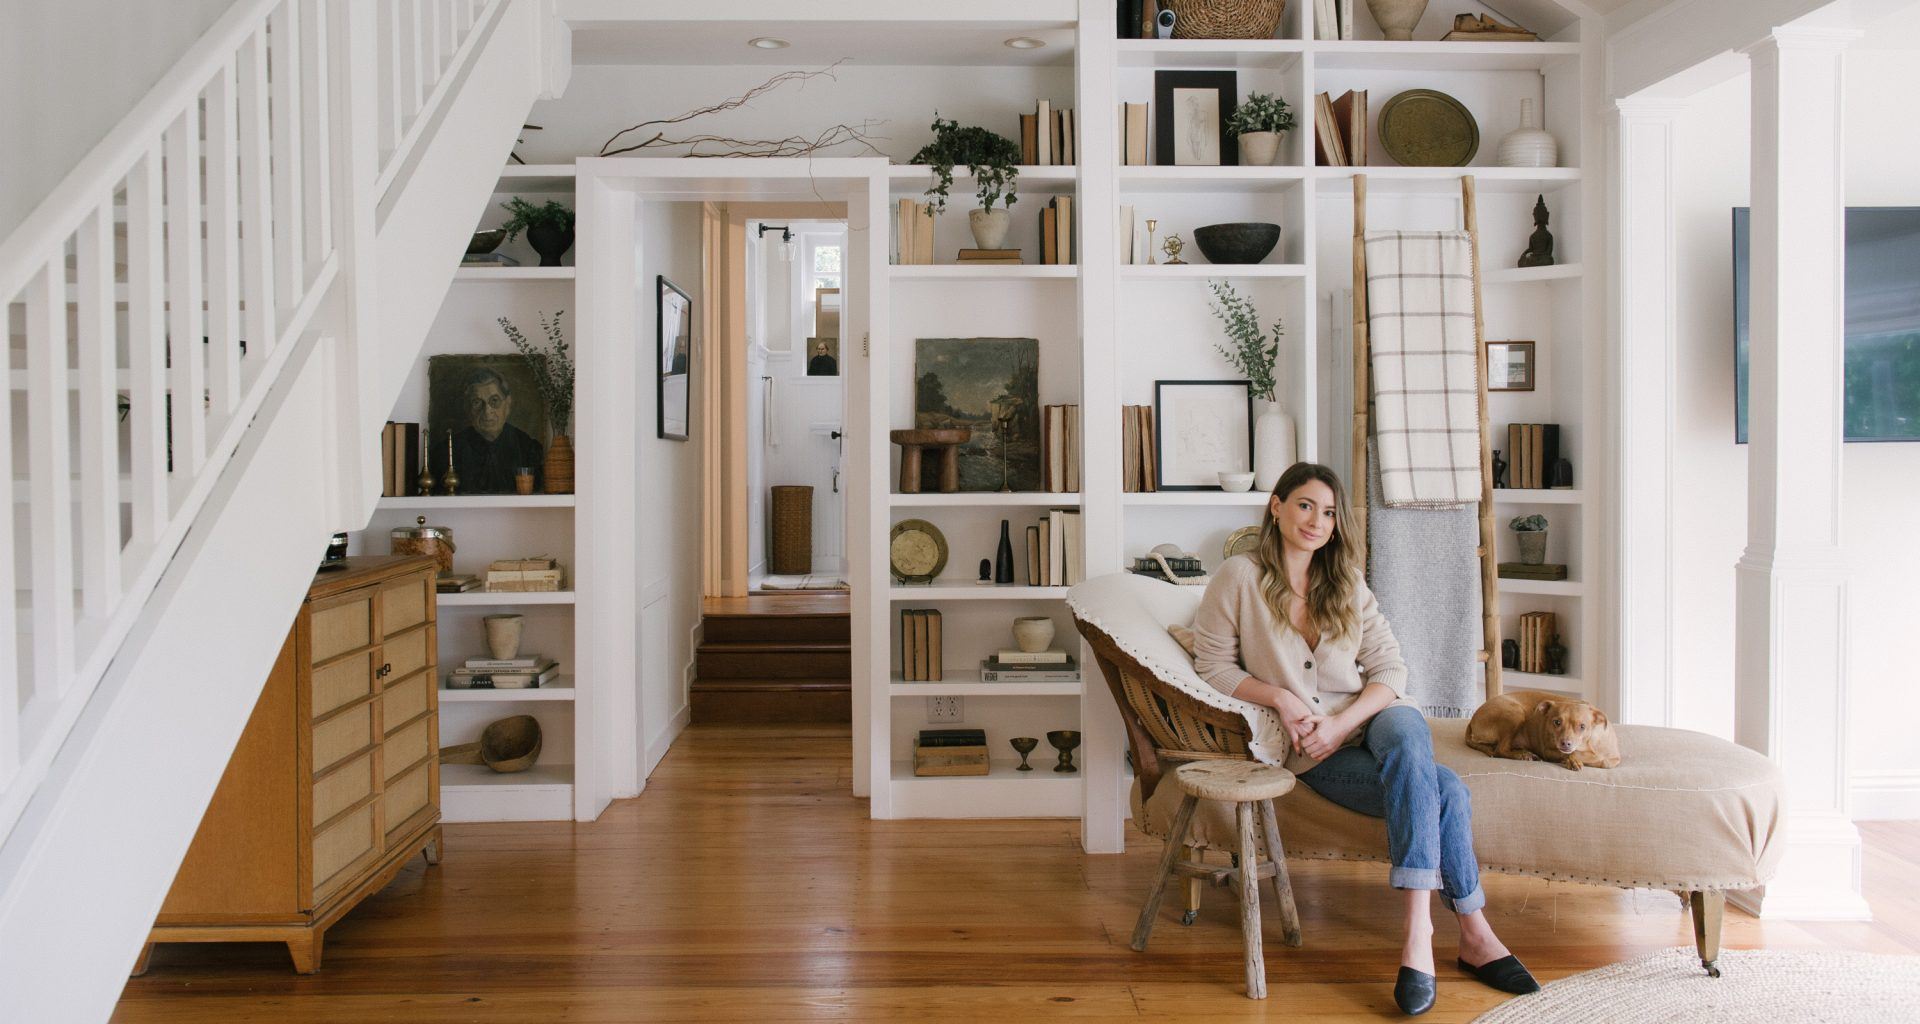 An Interior Designer's Keys to Balance, Budgets, & Inspiration